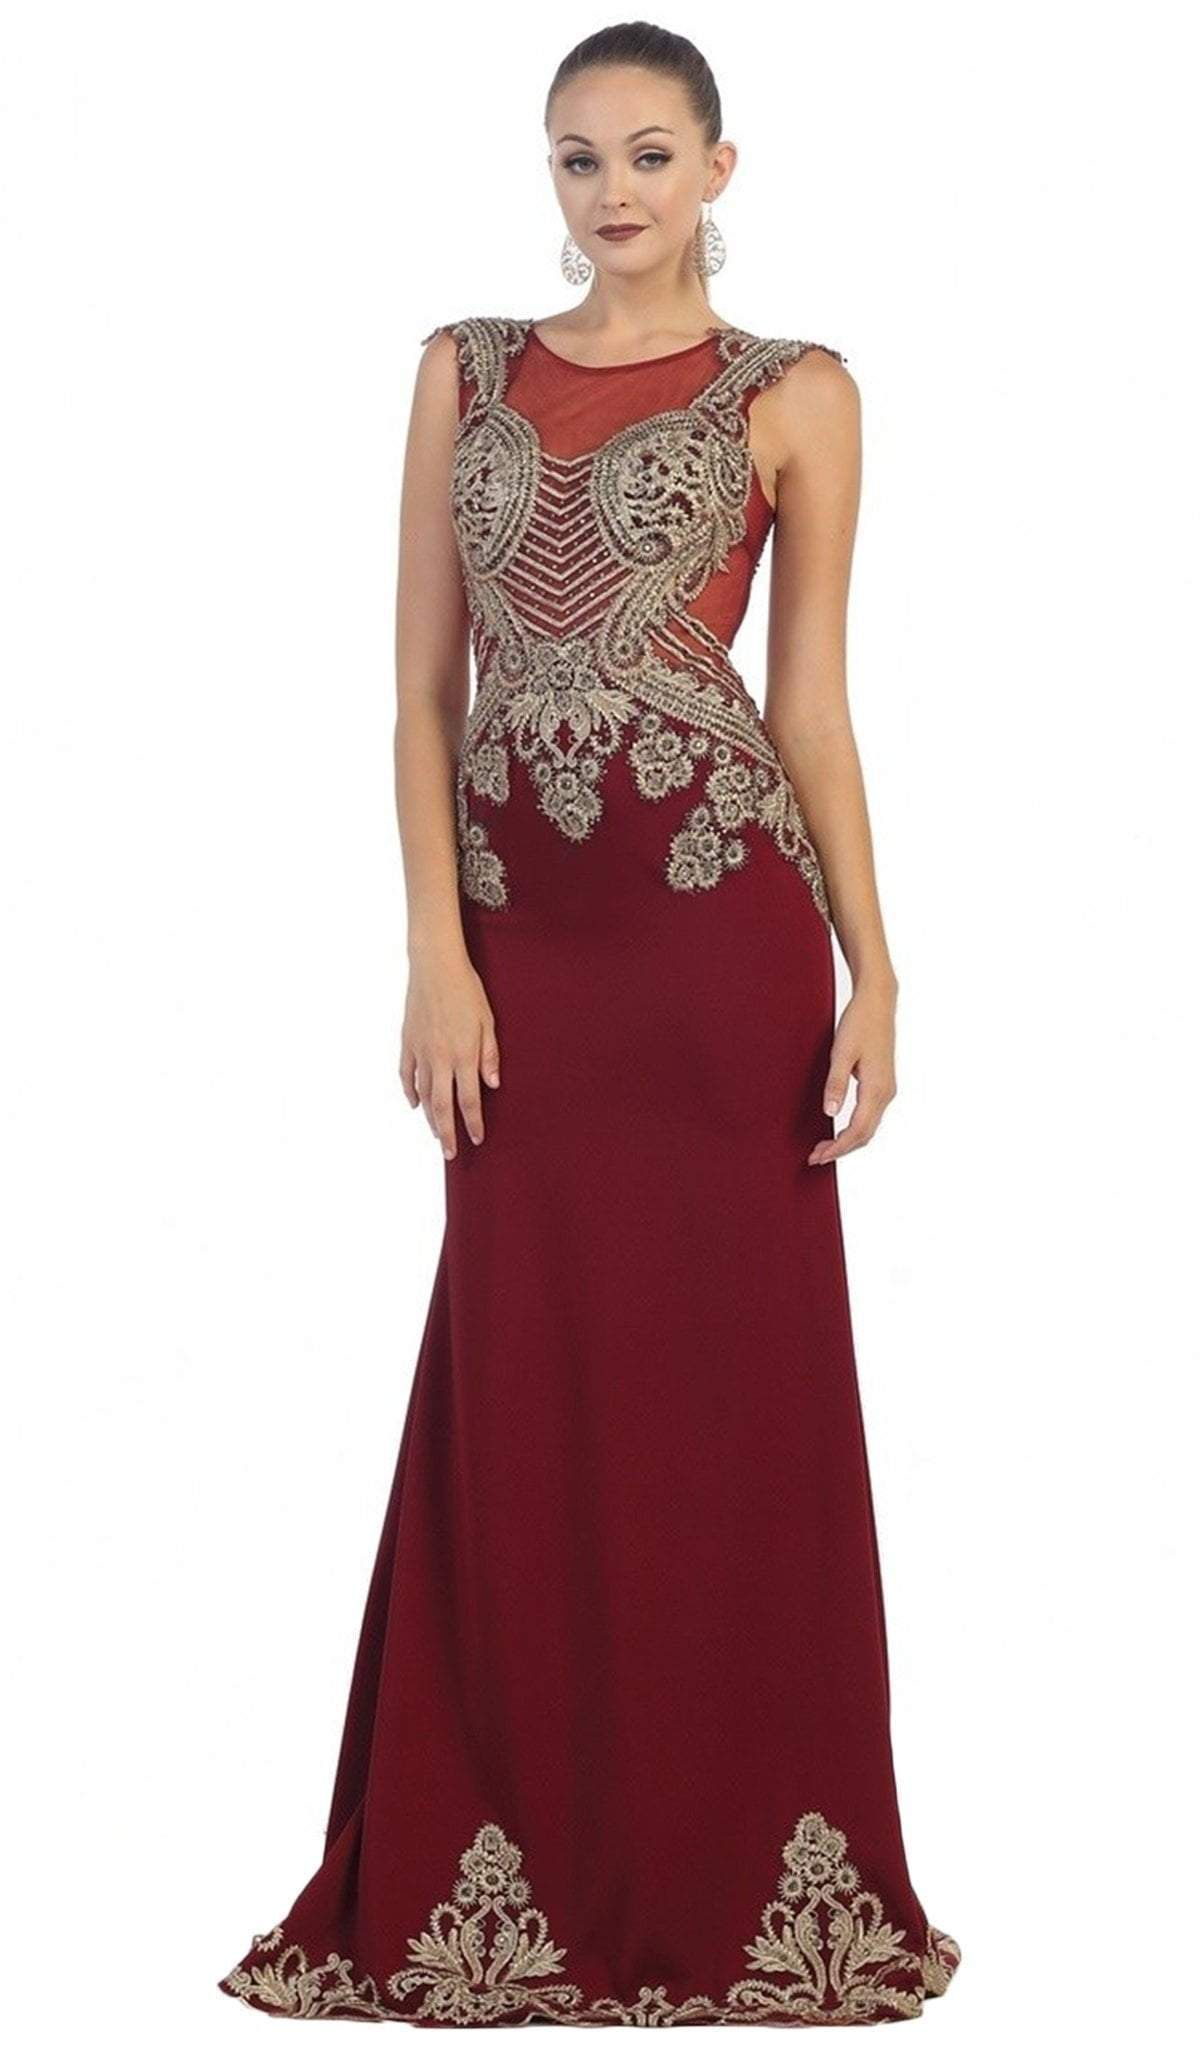 DQ 2078 - High Neck Embroidered Bodice, Key-Hole Closure